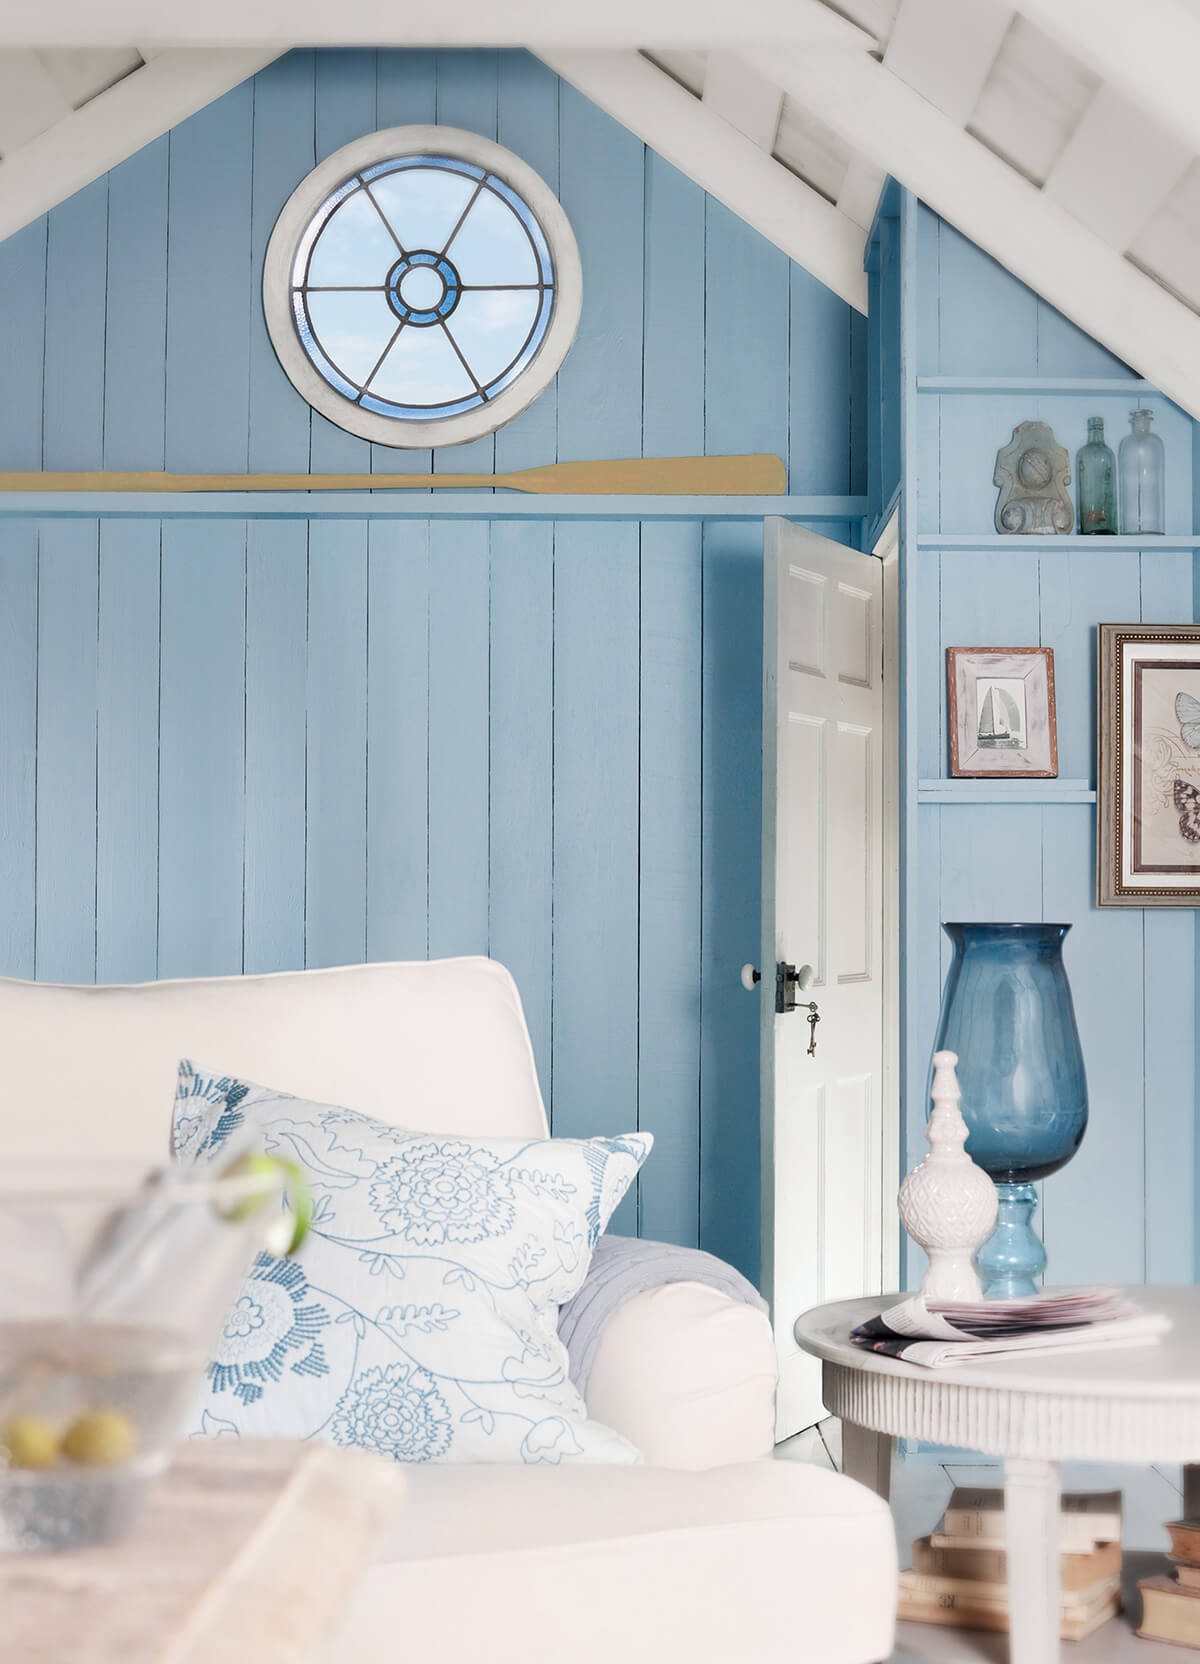 Best Ocean Blues Home Decor Inspiration Ideas and Designs for